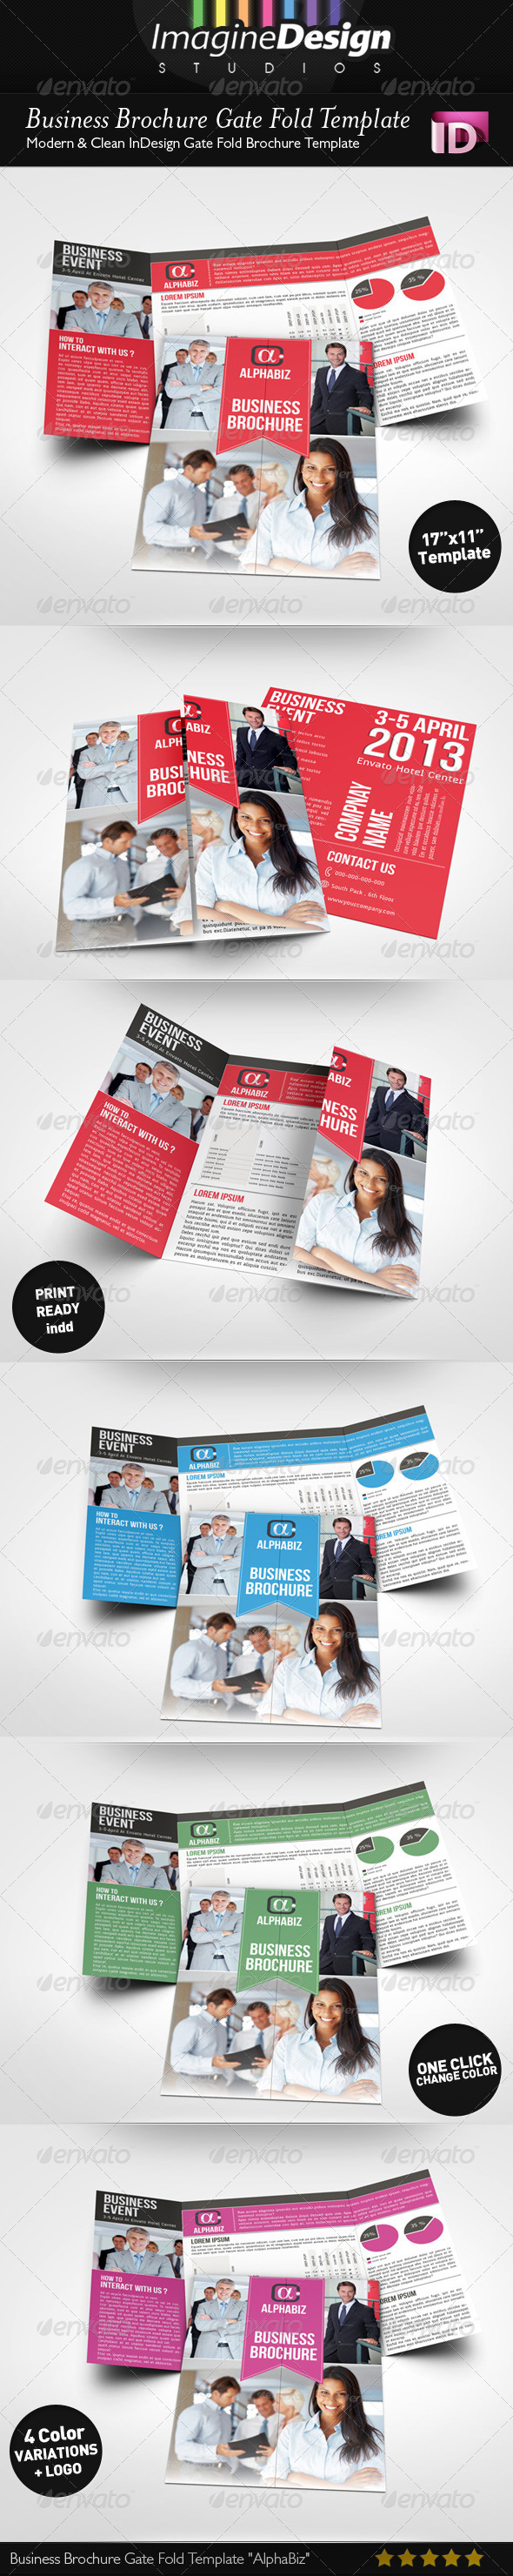 "Business Brochure Gate Fold Template ""AlphaBiz"" - Corporate Brochures"